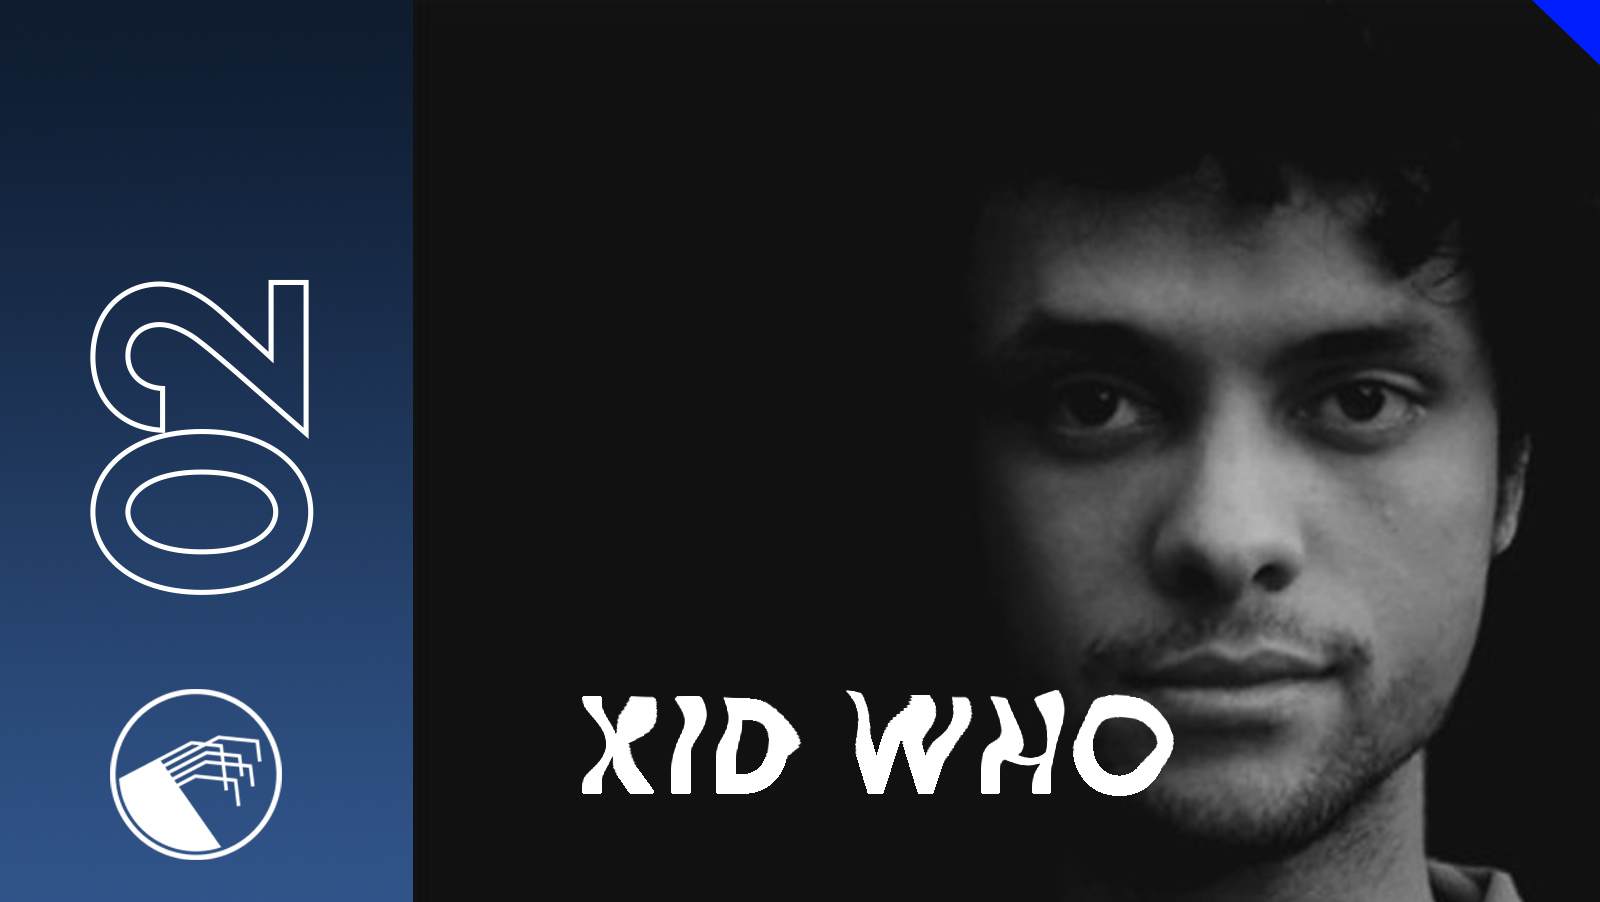 002 Kid Who